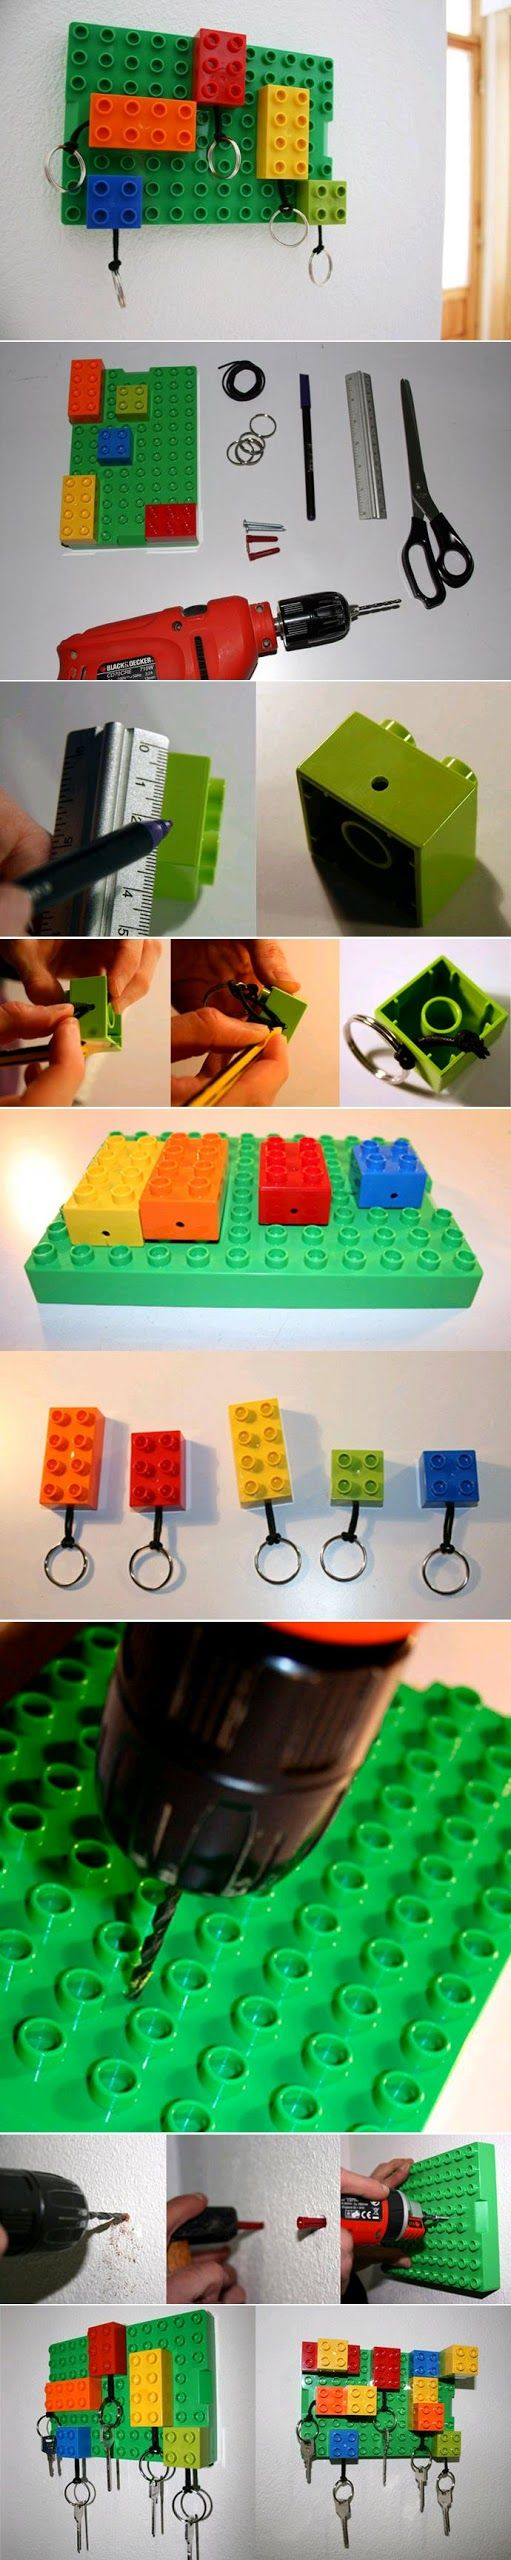 Diy : Lego Key Hanger.I can see passes being attached to rings! - Tee se itse: Lego avaimenperät + teline